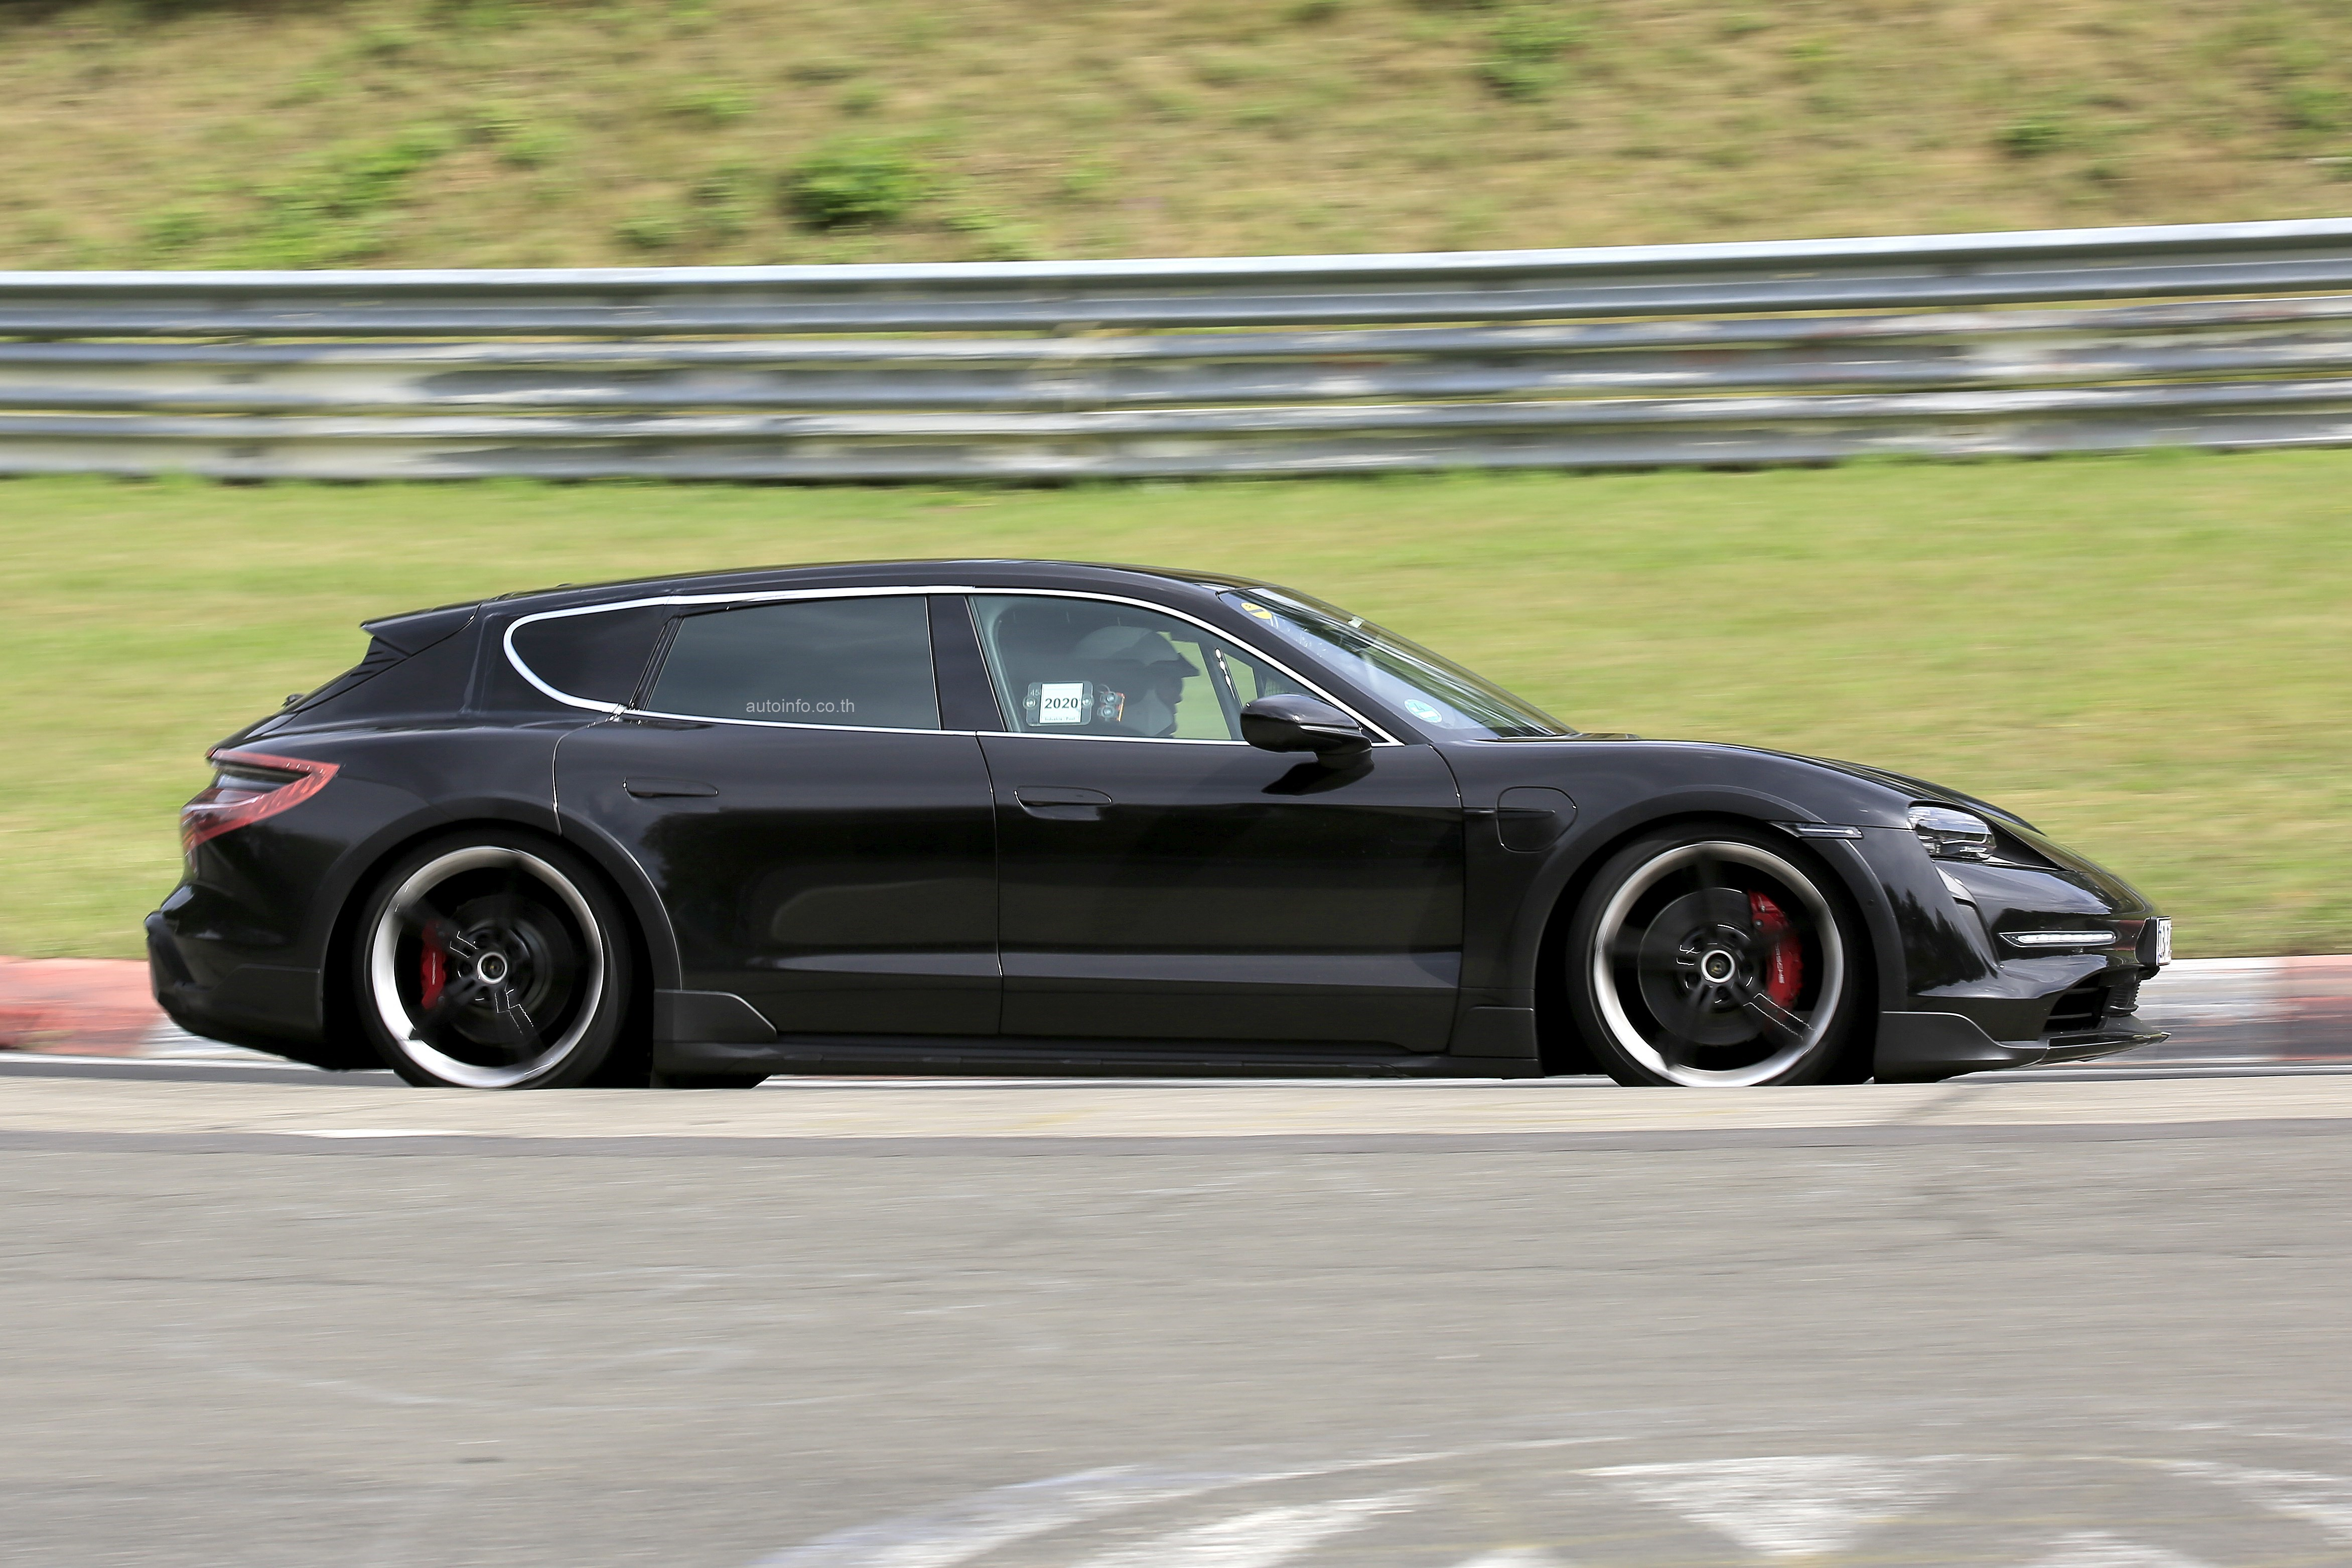 Porsche Taycan Sport Turismo Spy shot of secretly tested future car